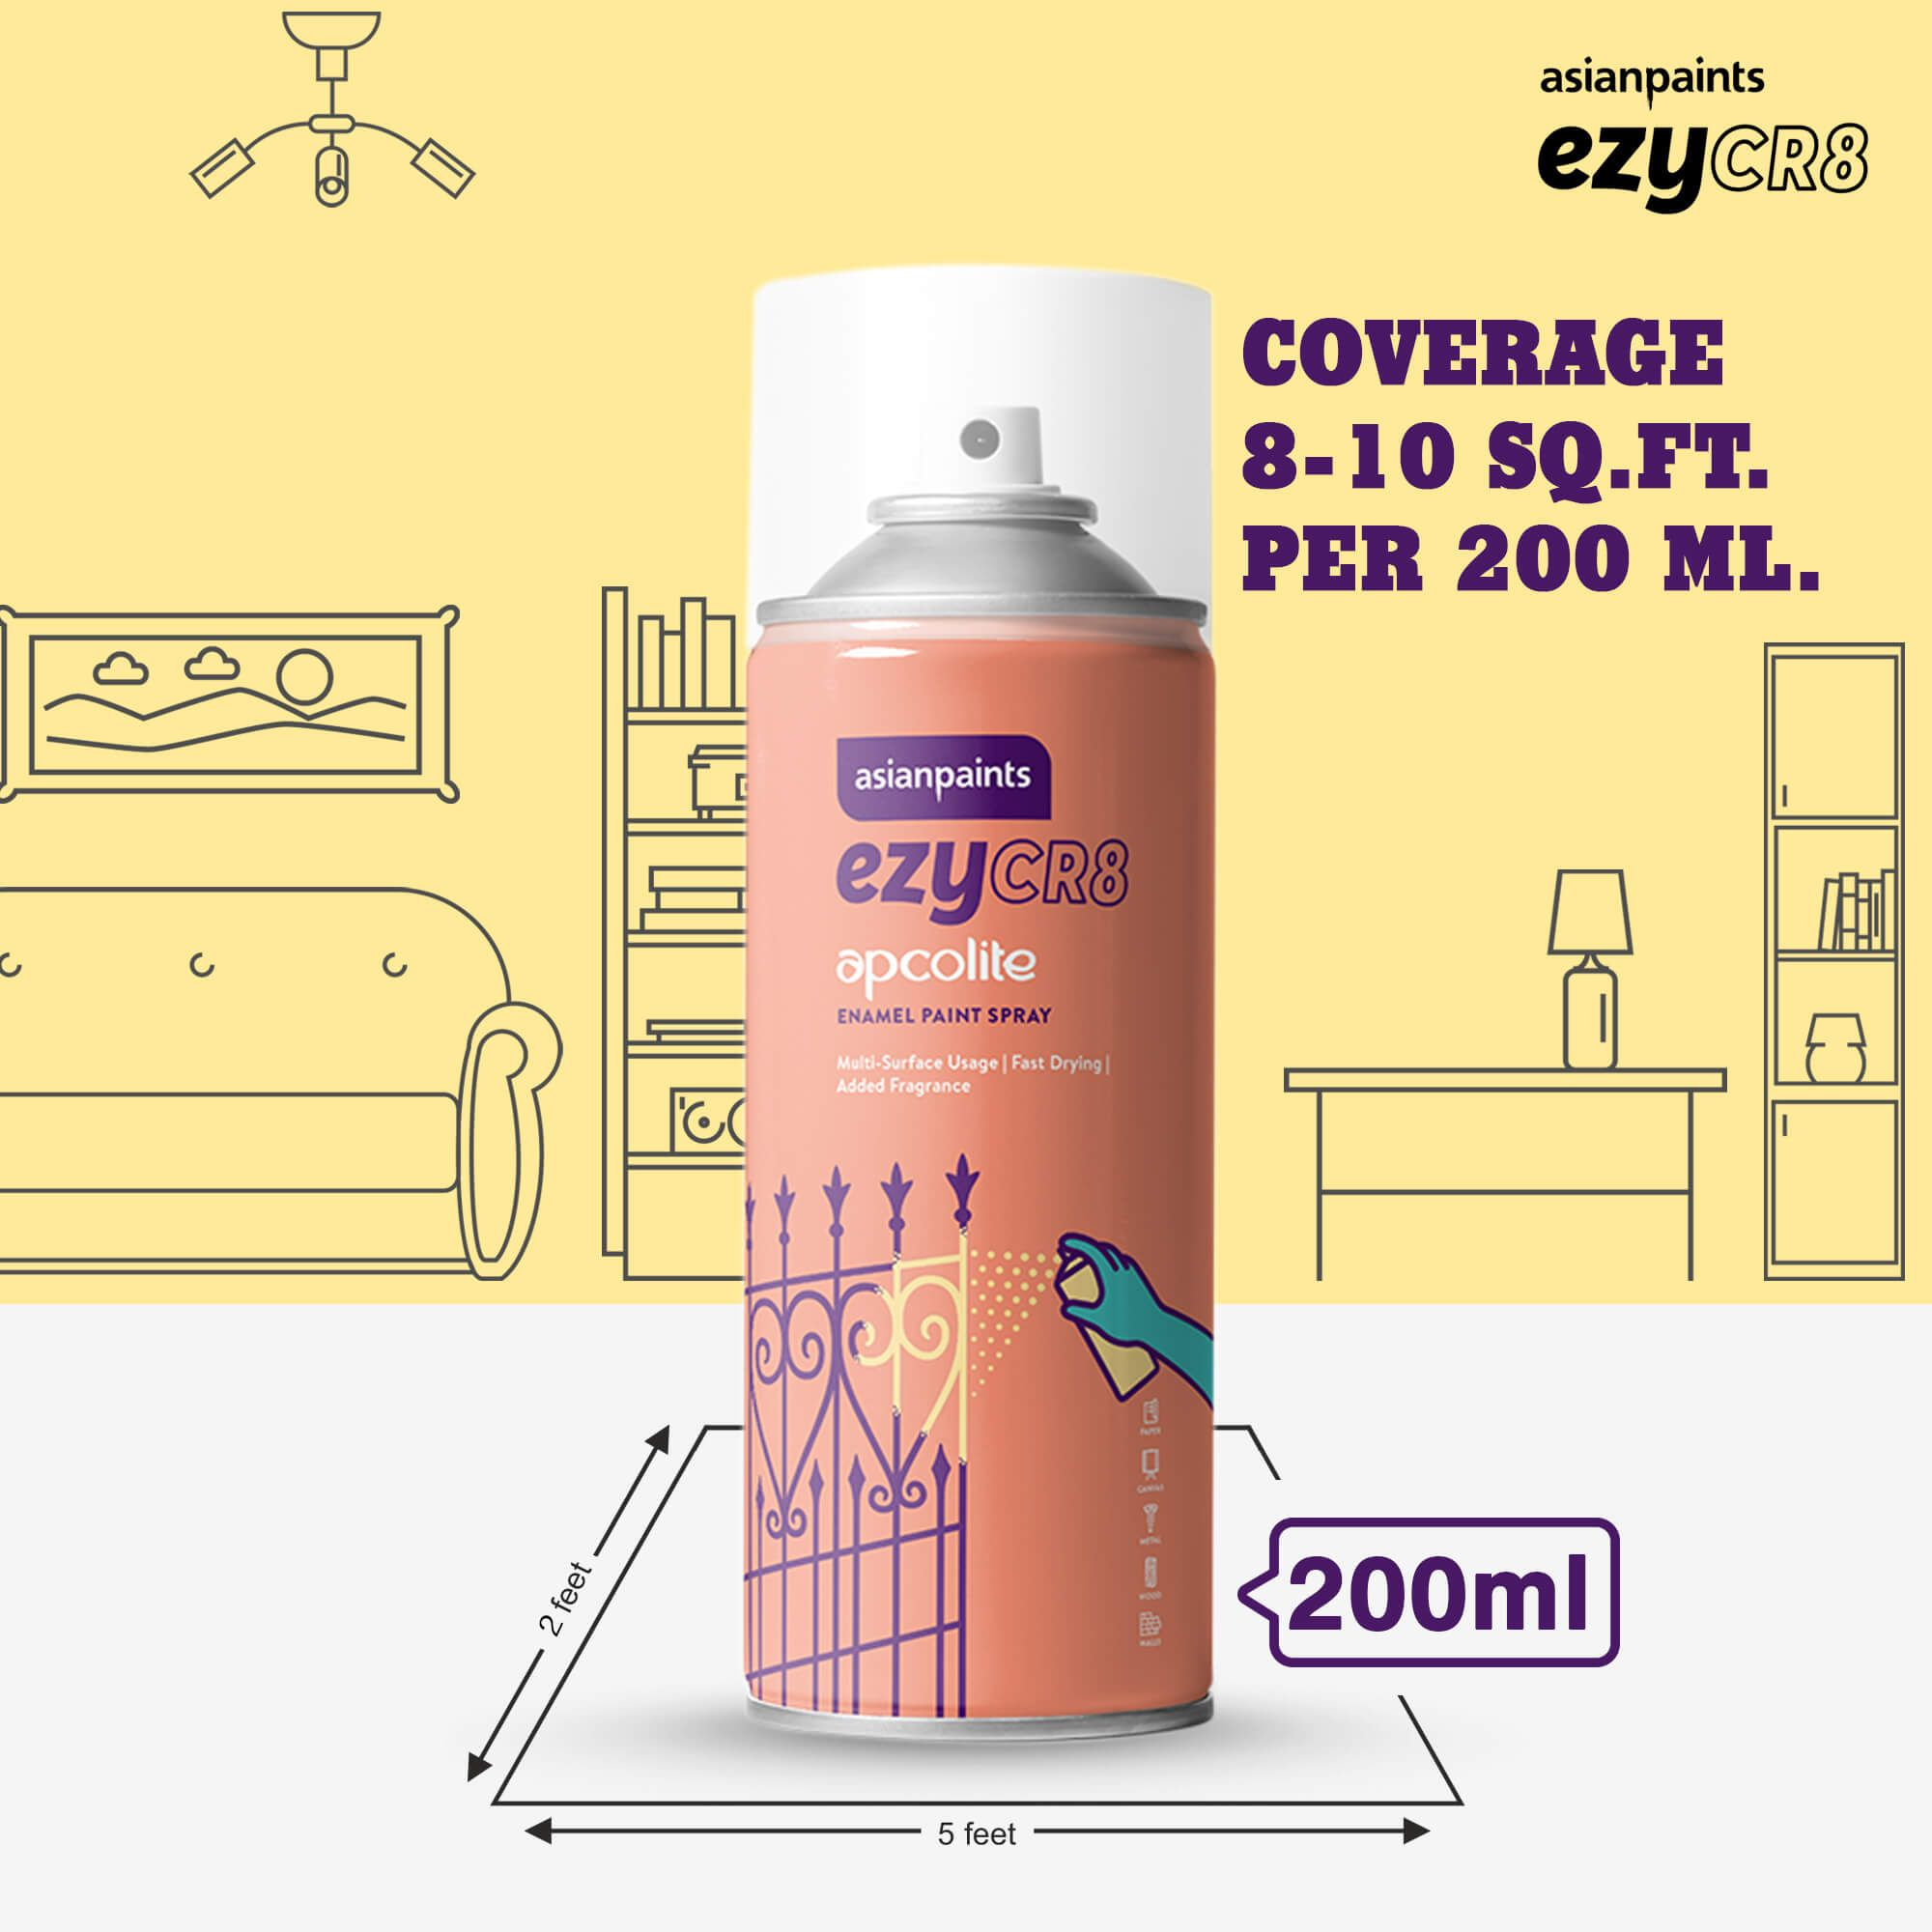 ezyCR8 Apcolite Enamel Paint Spray Golden Yellow (Yellow) 200ml